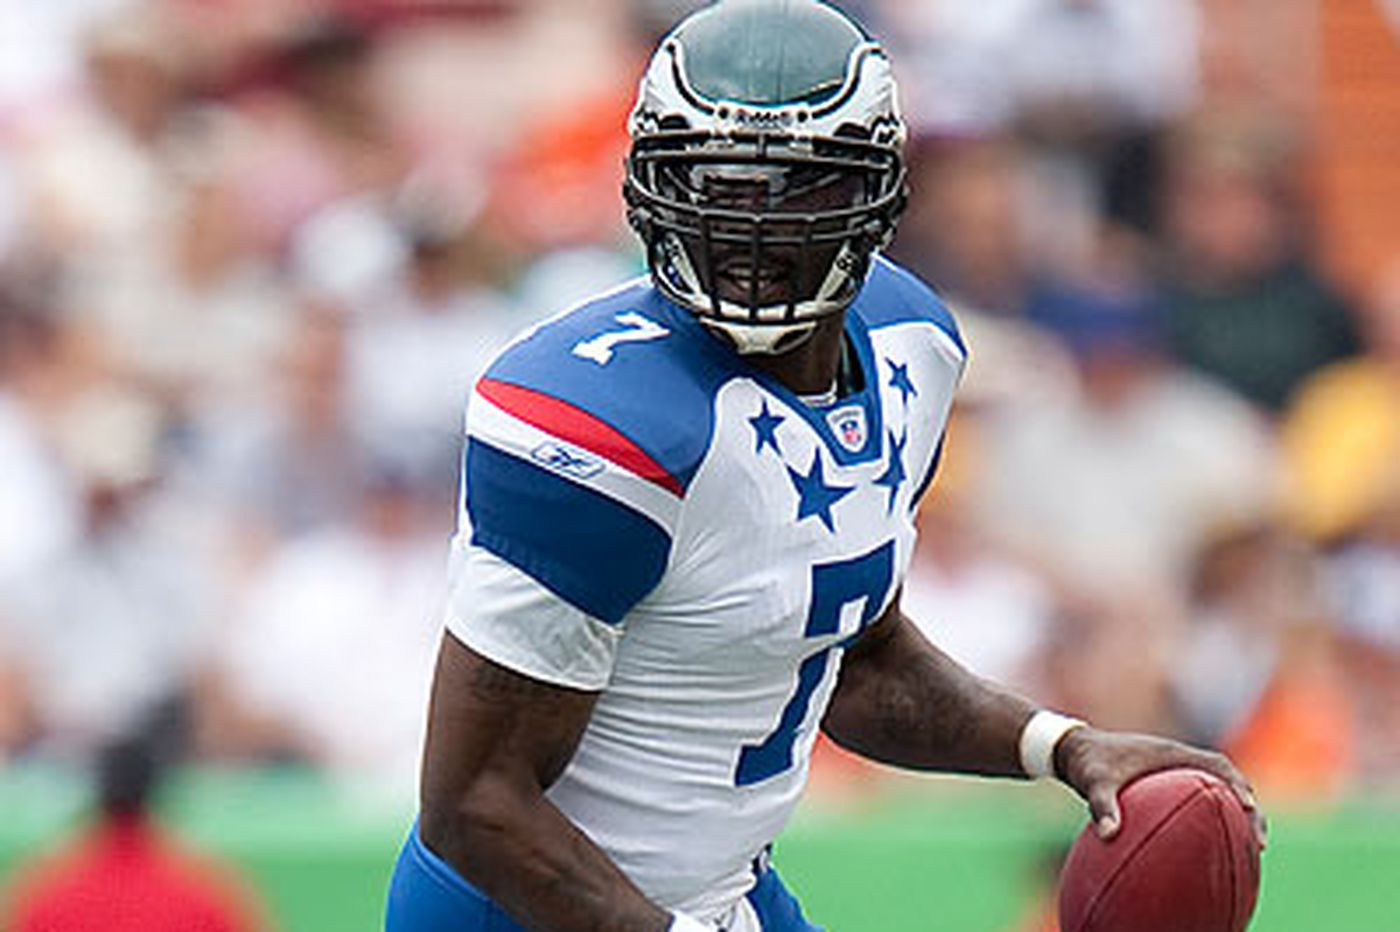 Vick's skills, personality make him popular within NFL fraternity